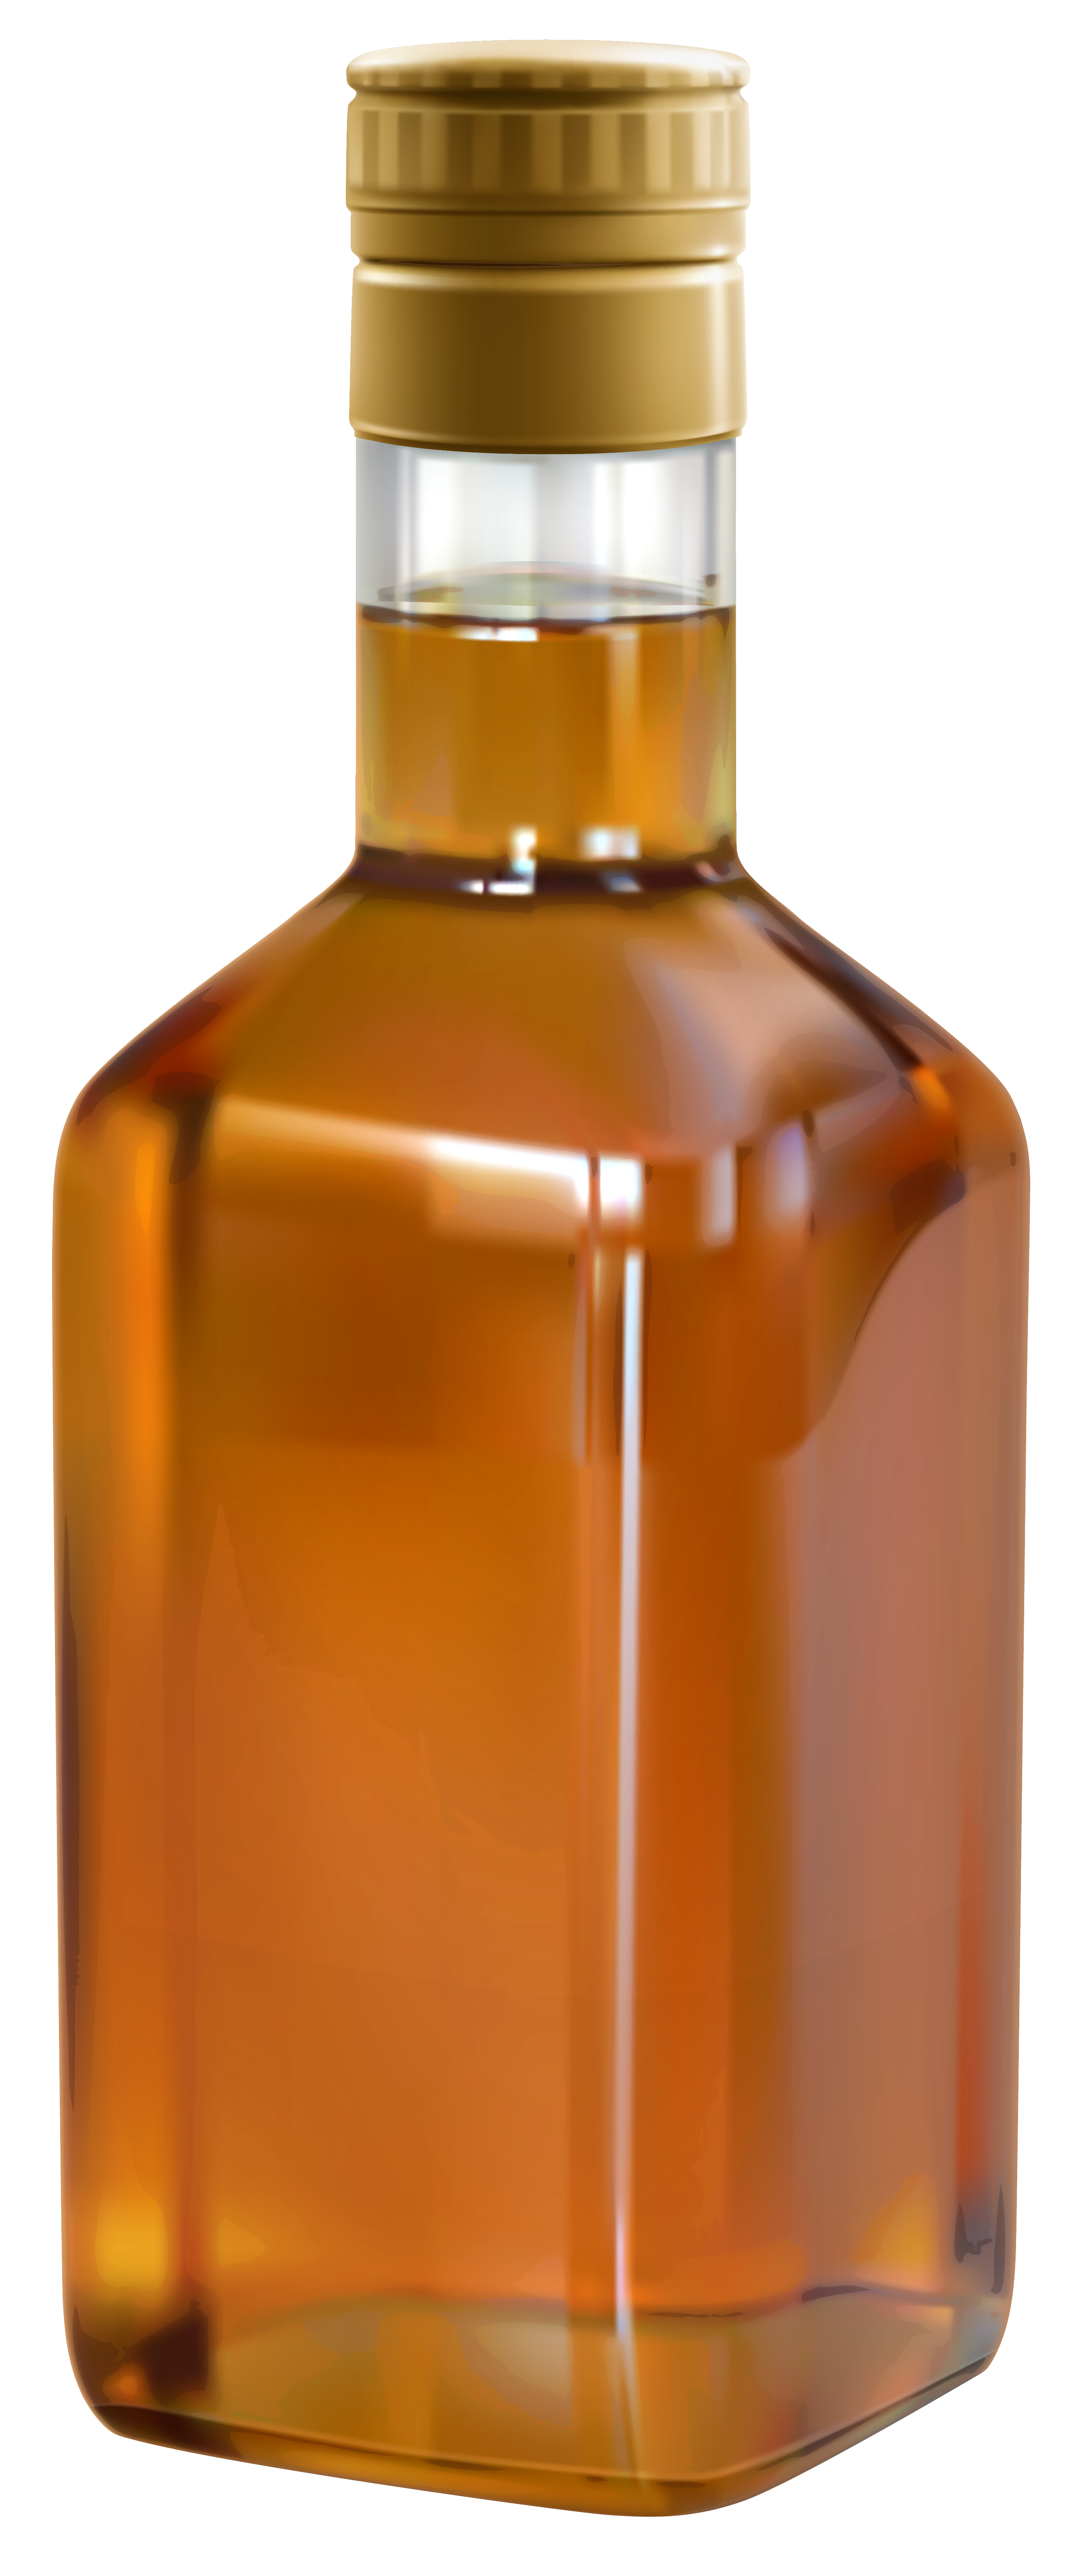 Clip art image gallery. Whiskey bottle png